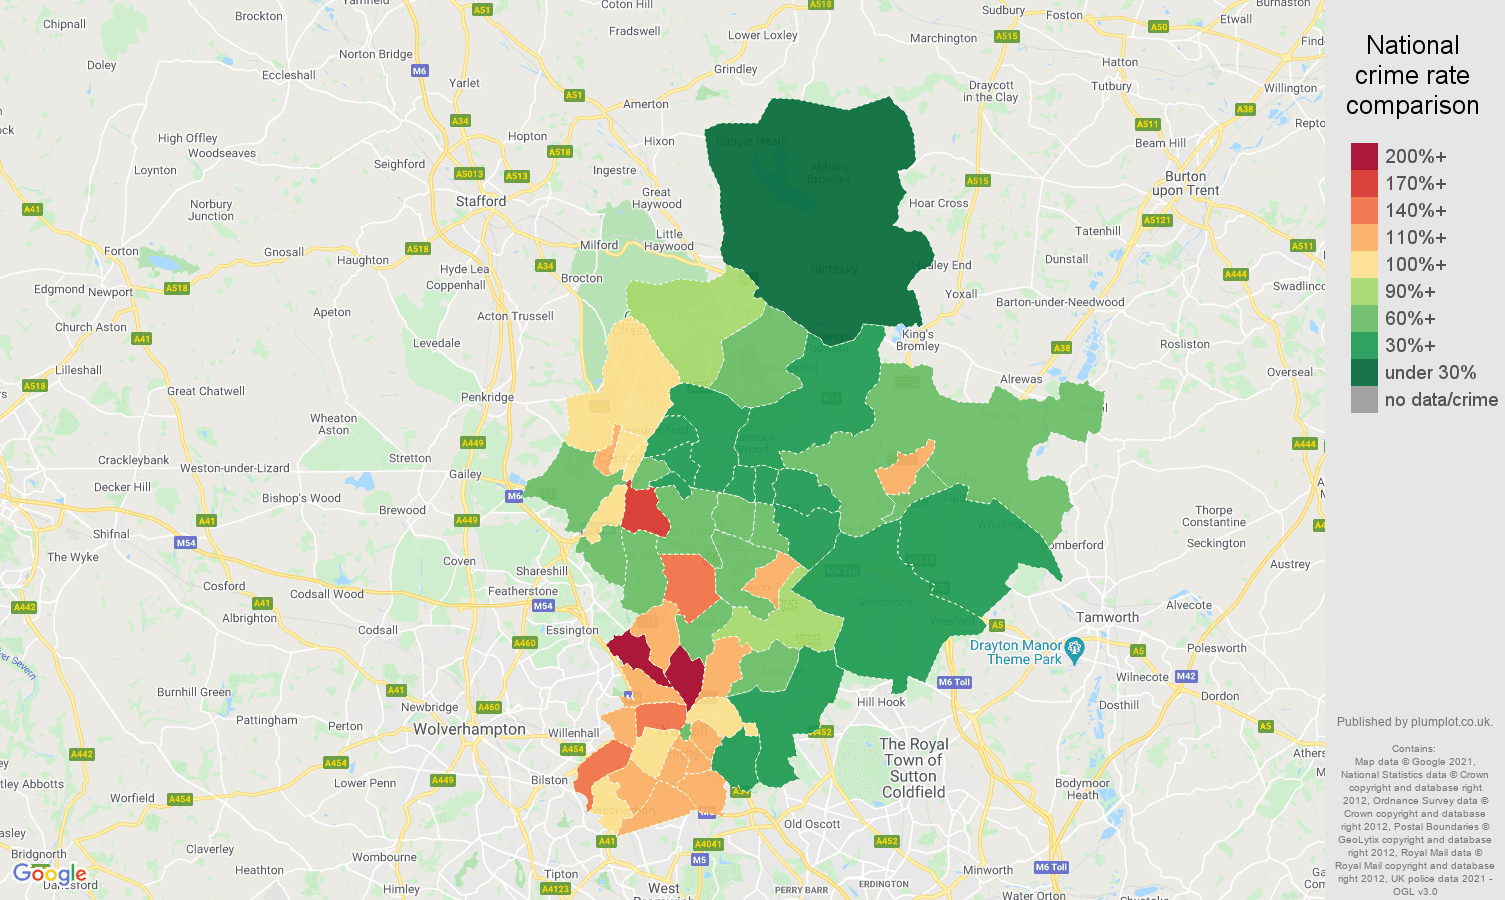 Walsall criminal damage and arson crime rate comparison map